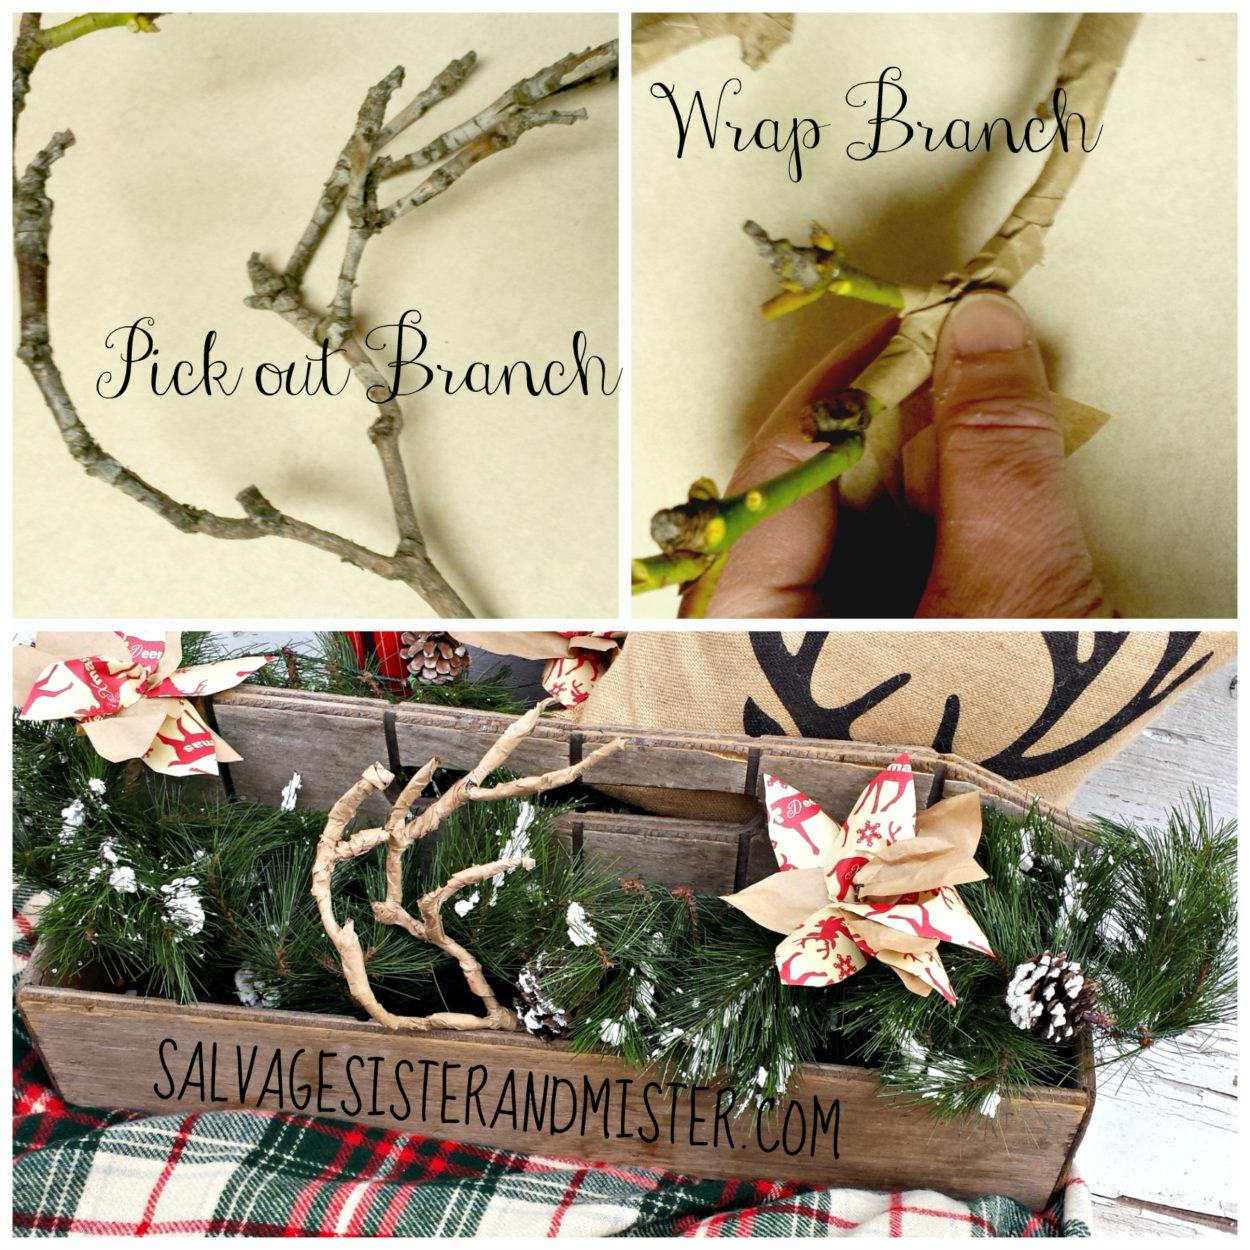 Deer antlers are a popular home decor item right now.  Want the trend but don't want to pay for it?  Here is an easy DIY tutoria on making these antlers with just items you have lying around.  Great way to reuse items you have into something useful.  Perfect for a rustic Christmas.